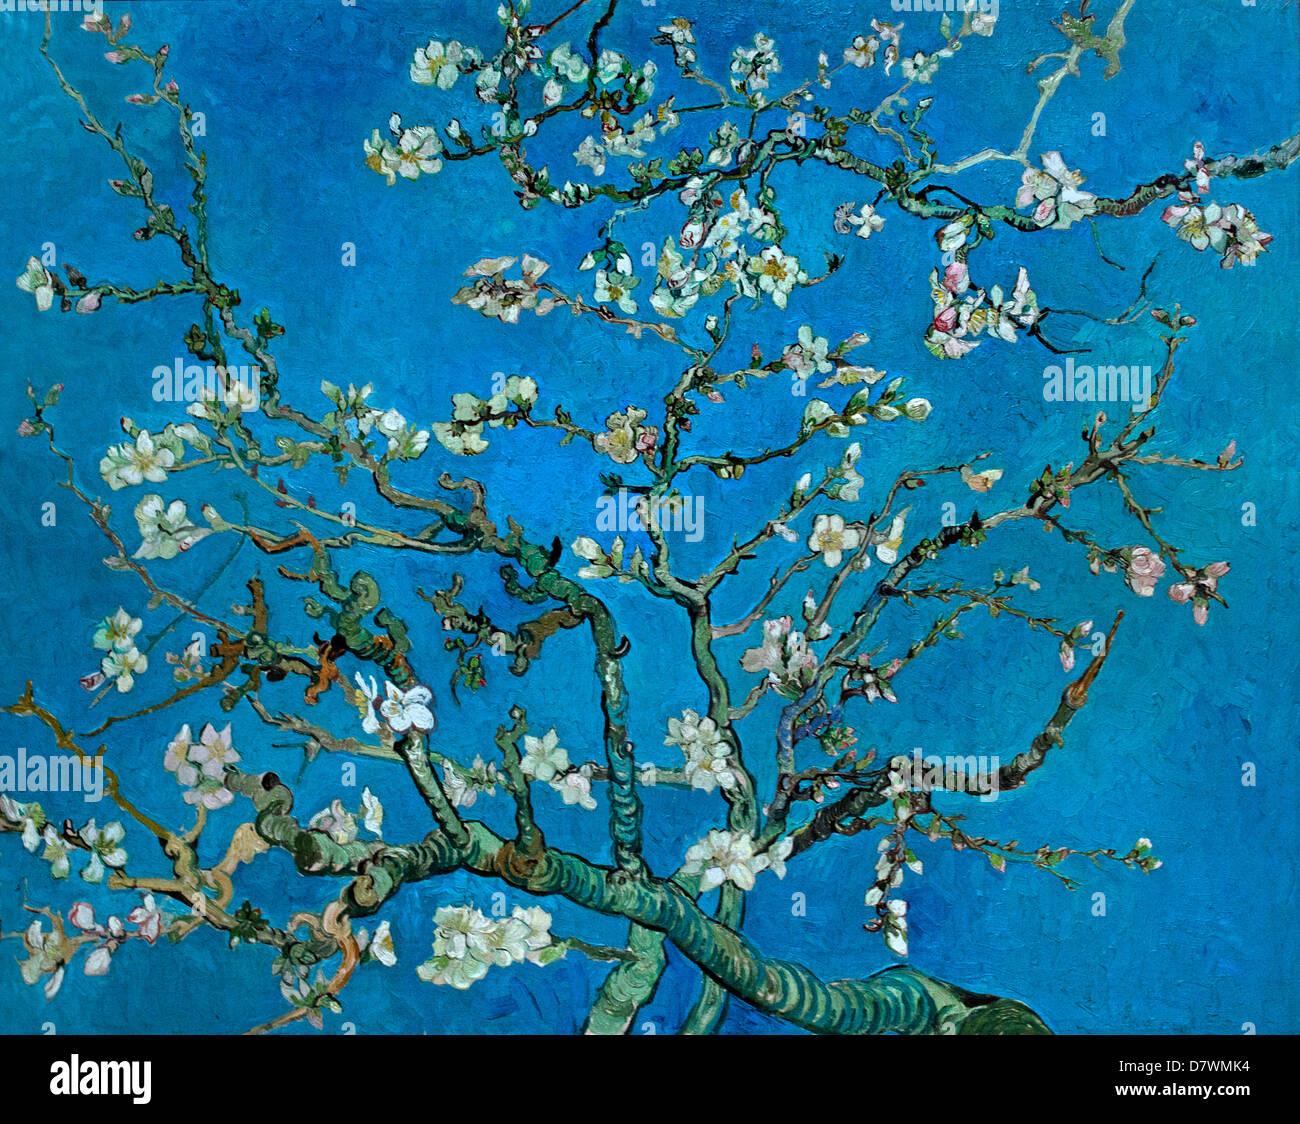 branches with almond blossom 1890 japonism vincent van gogh 1853 stock photo royalty free. Black Bedroom Furniture Sets. Home Design Ideas